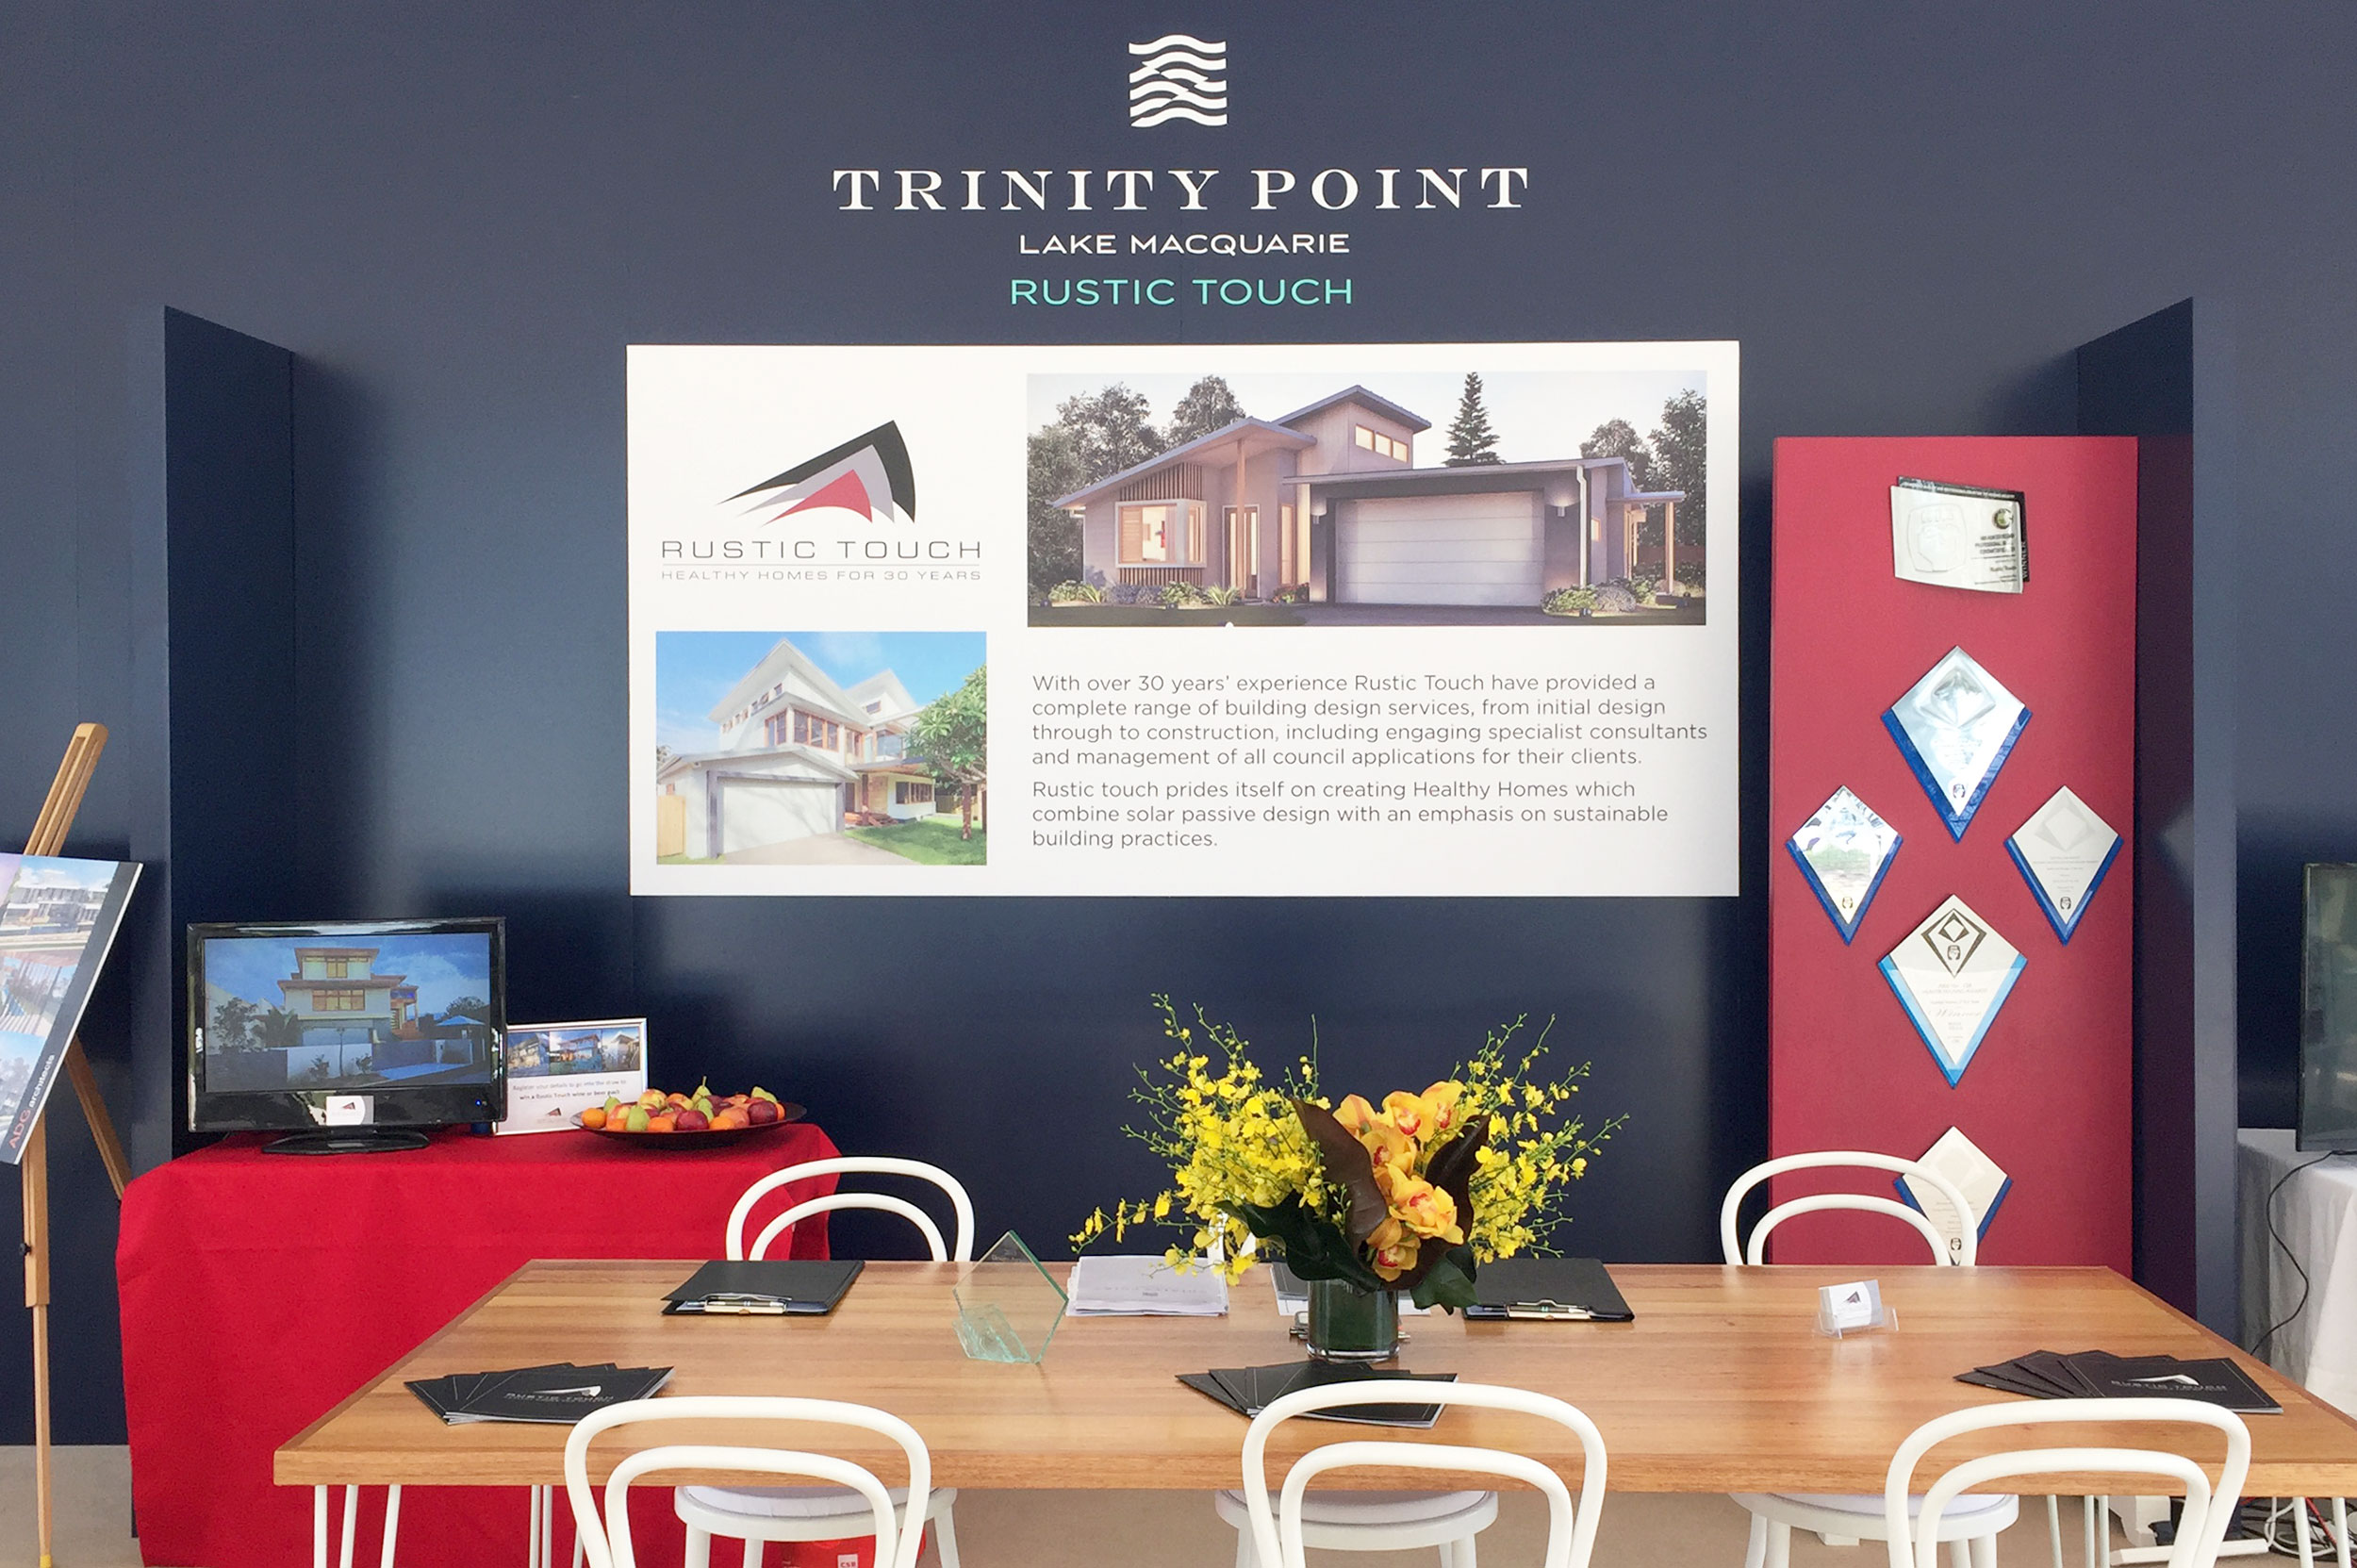 Rustic Touch at the opening of Trinity Point